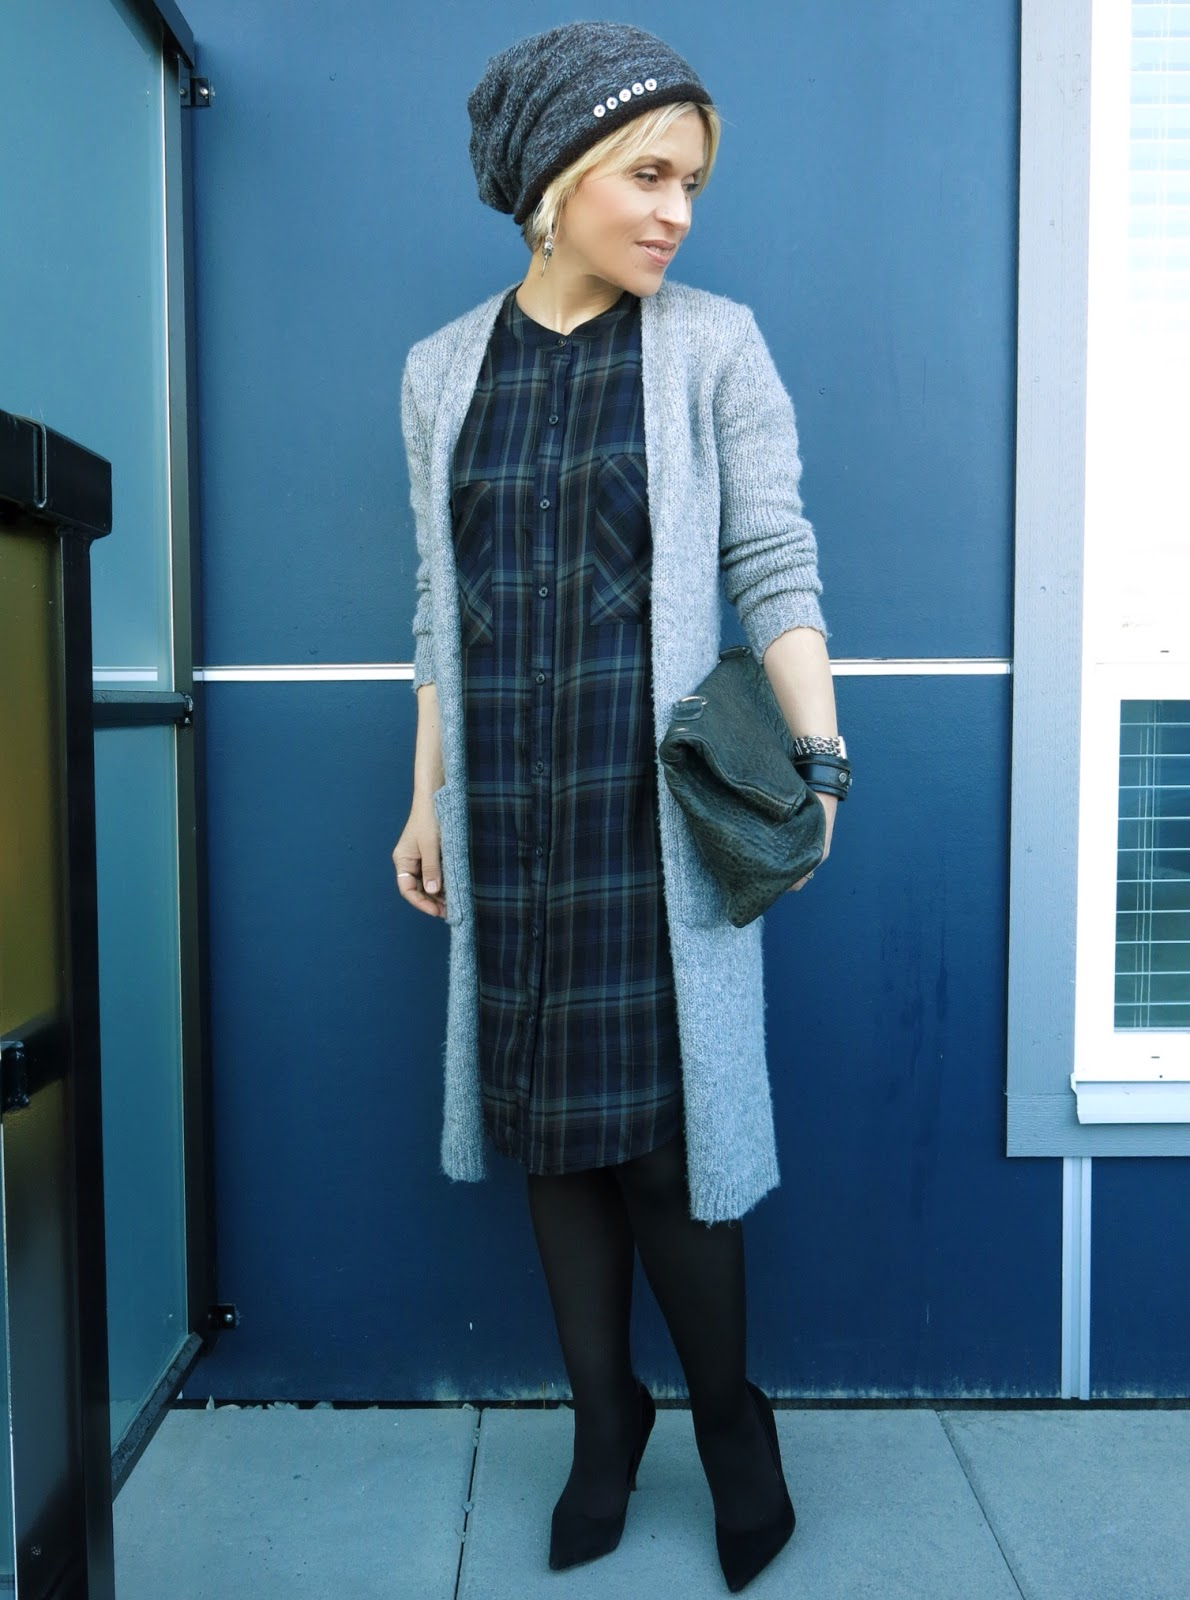 styling a plaid shirtdress with a long cardigan, black tights and pumps, and a woolen beanie